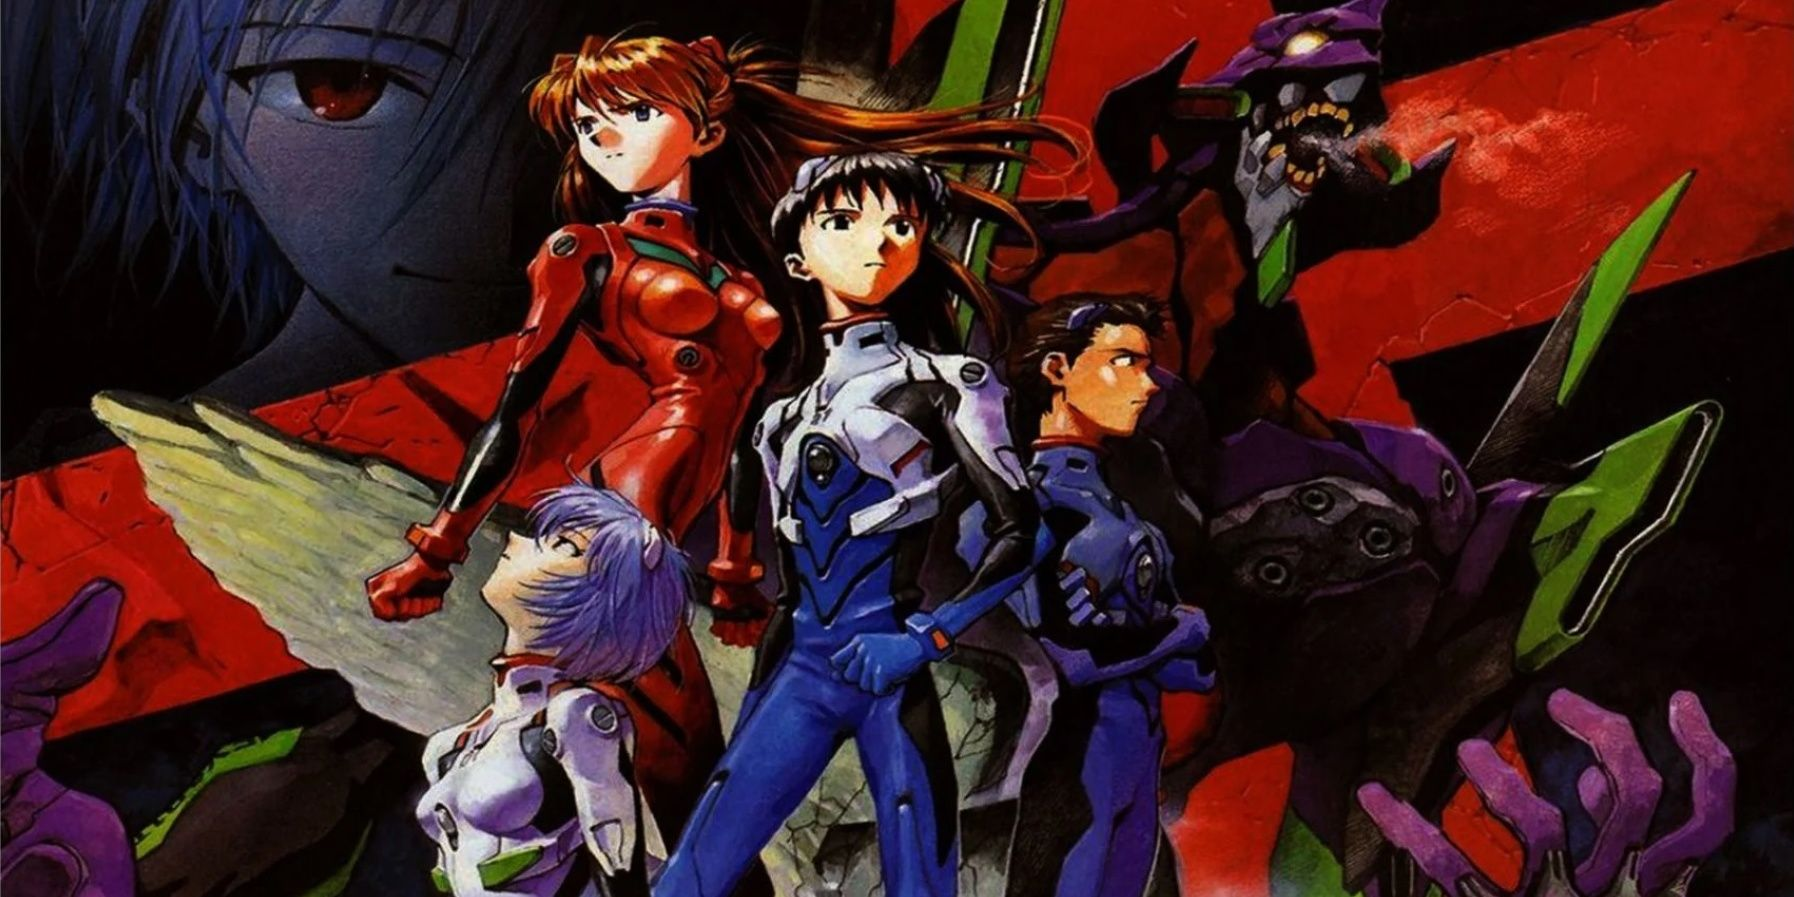 Evangelion Creator Says the Franchise Is 'Robot Anime' | CBR